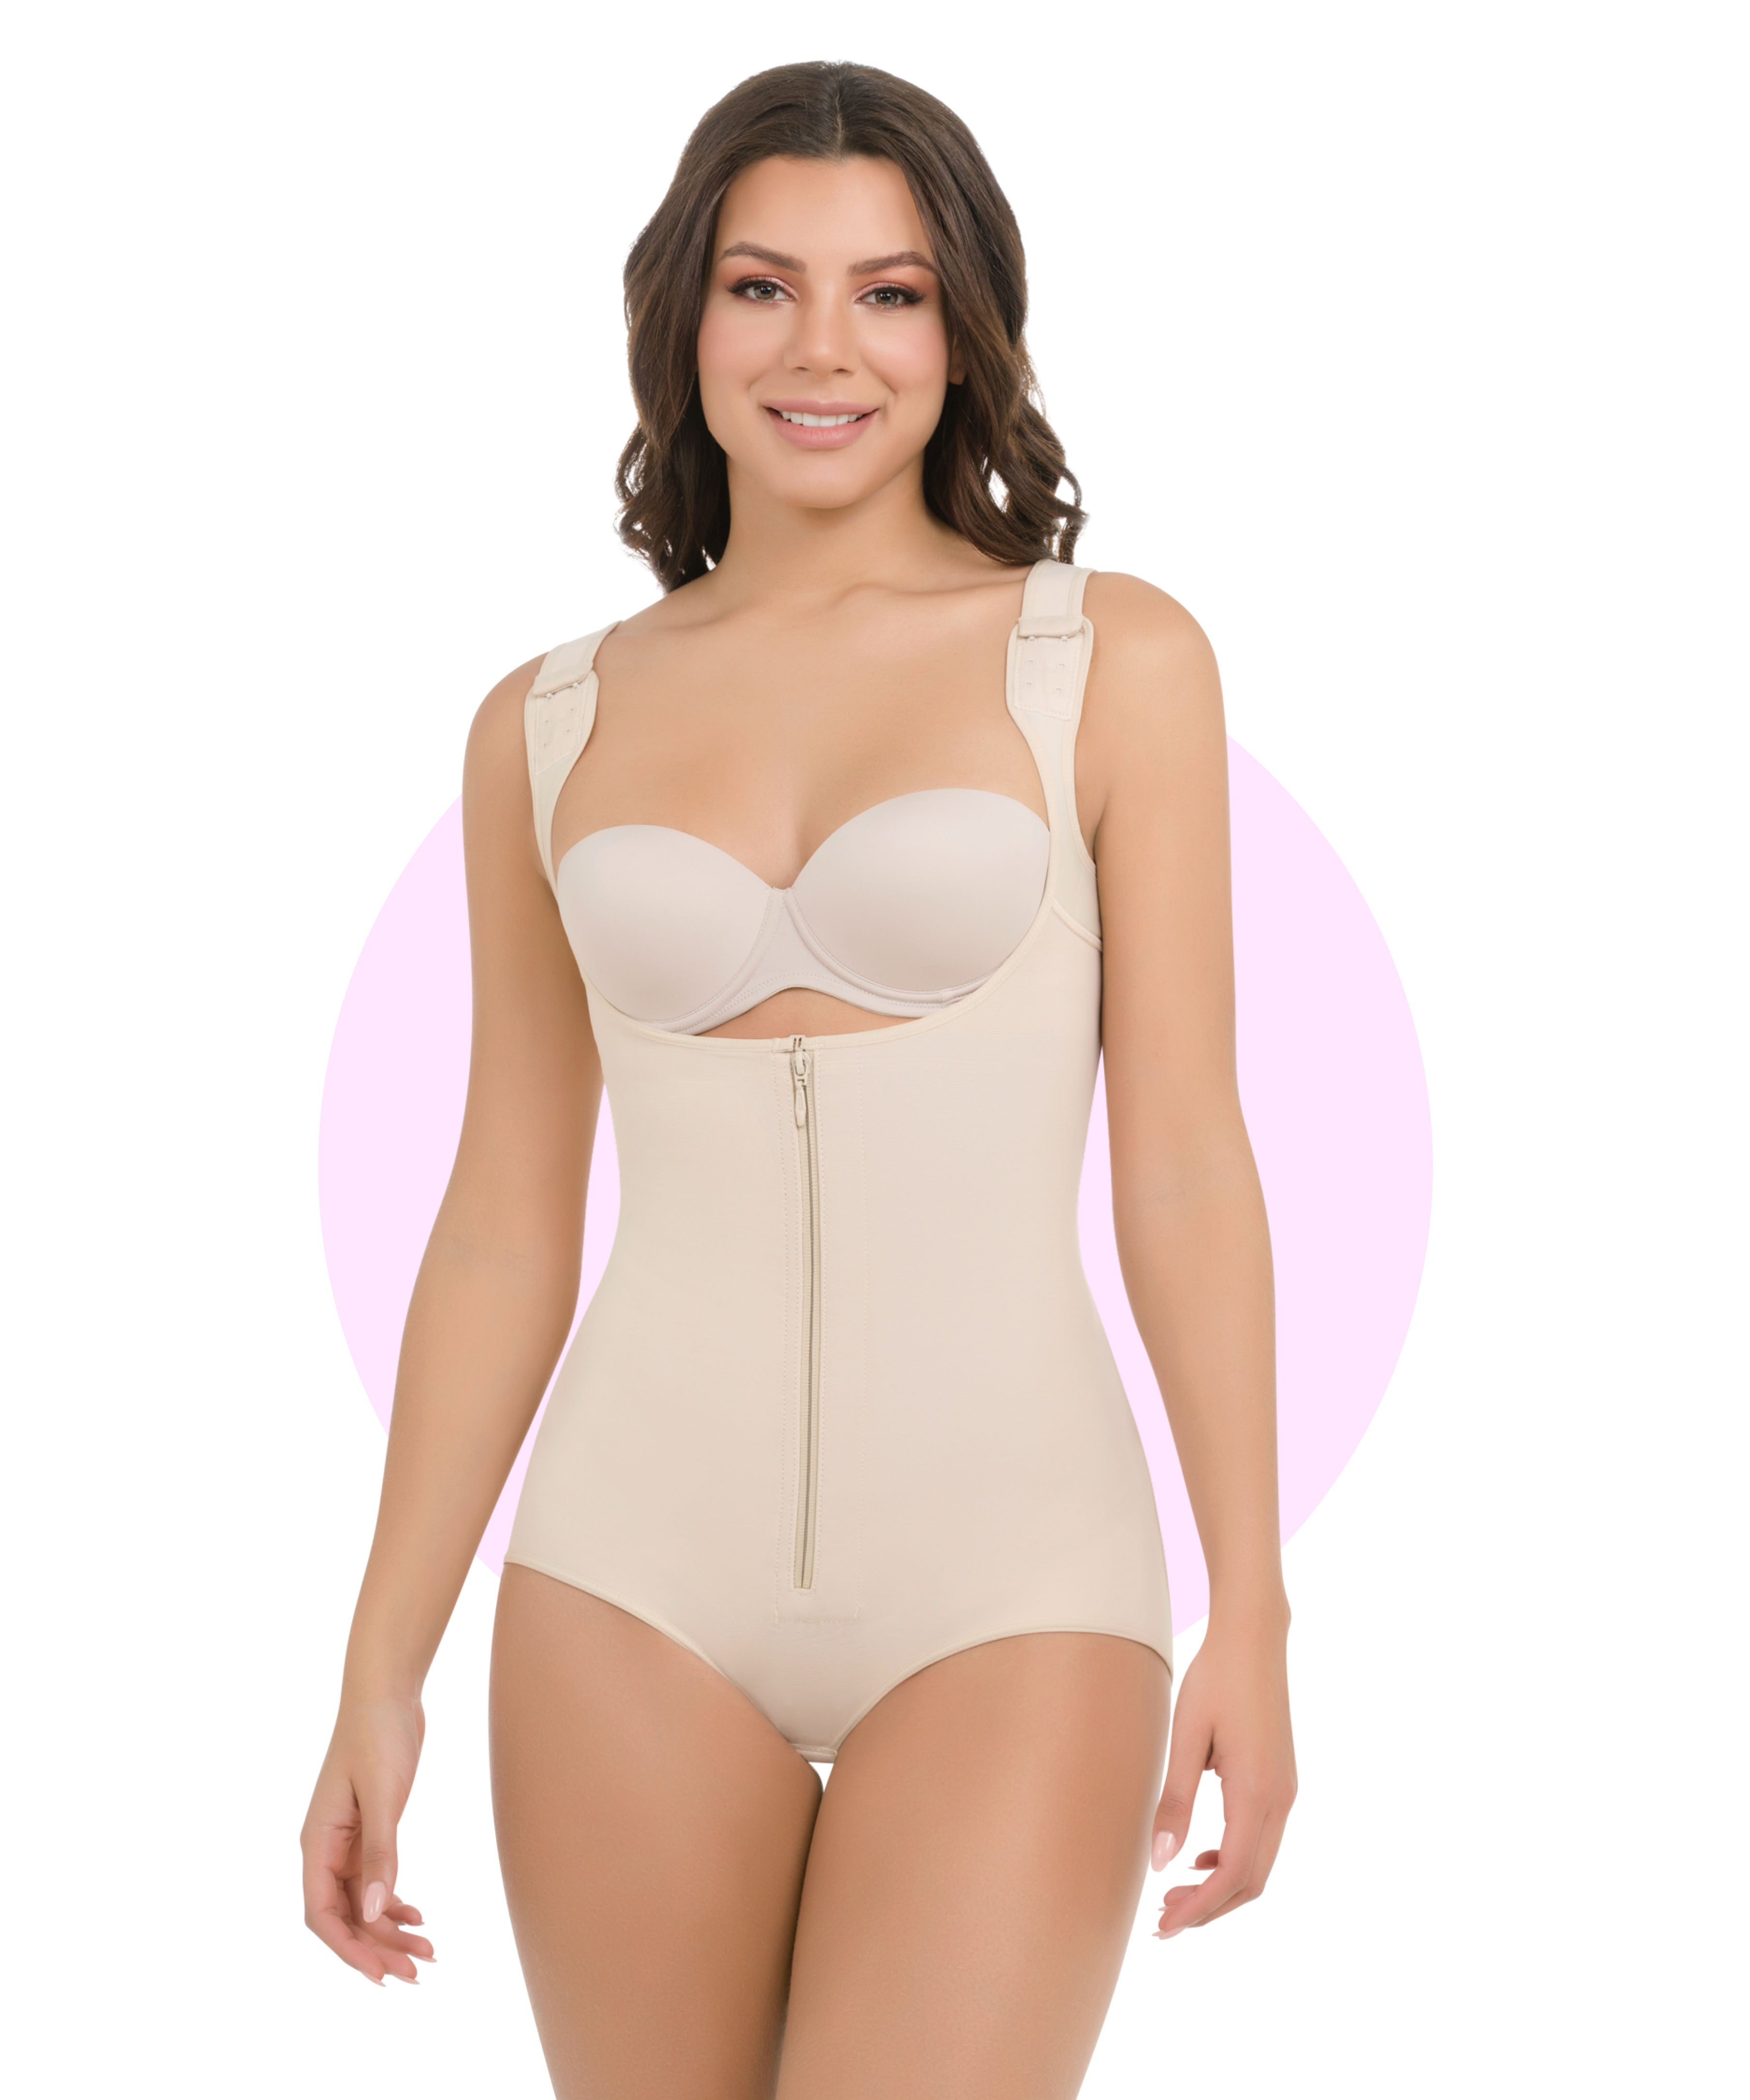 385 - Thermal Body Shaper With Wide Straps